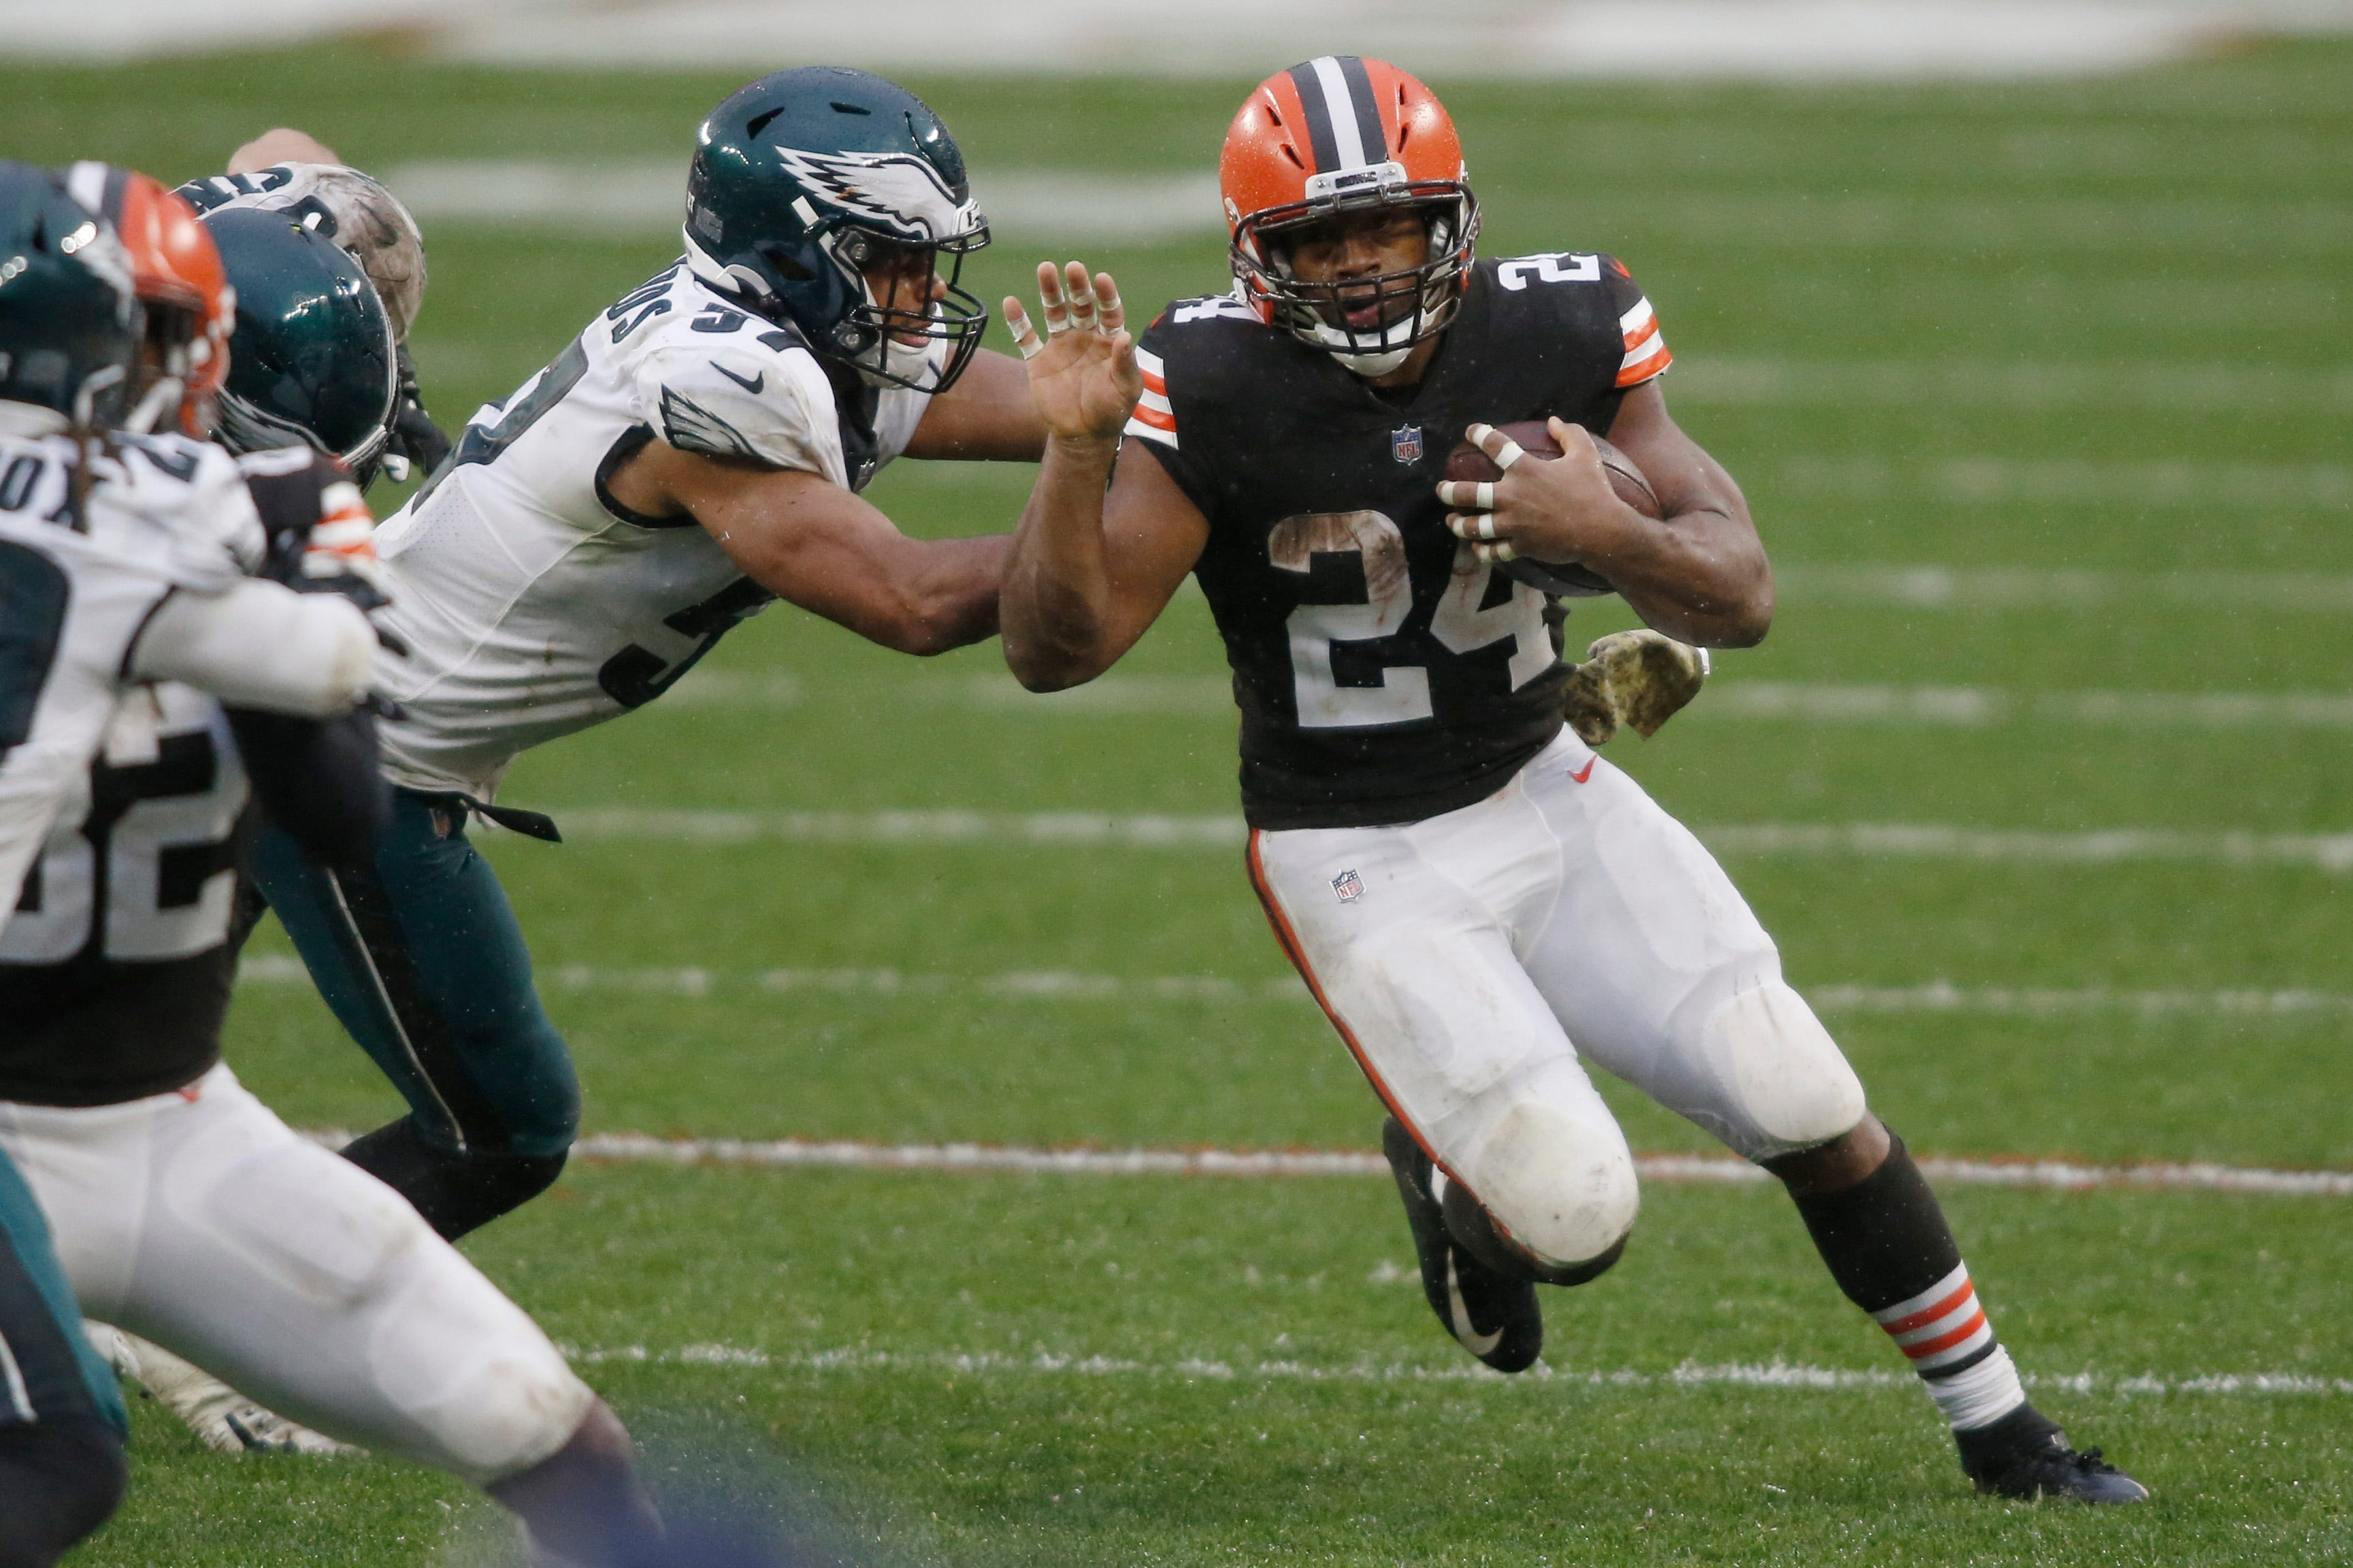 Opinion: Nick Chubb's return a great omen for Browns chances to end playoff drought